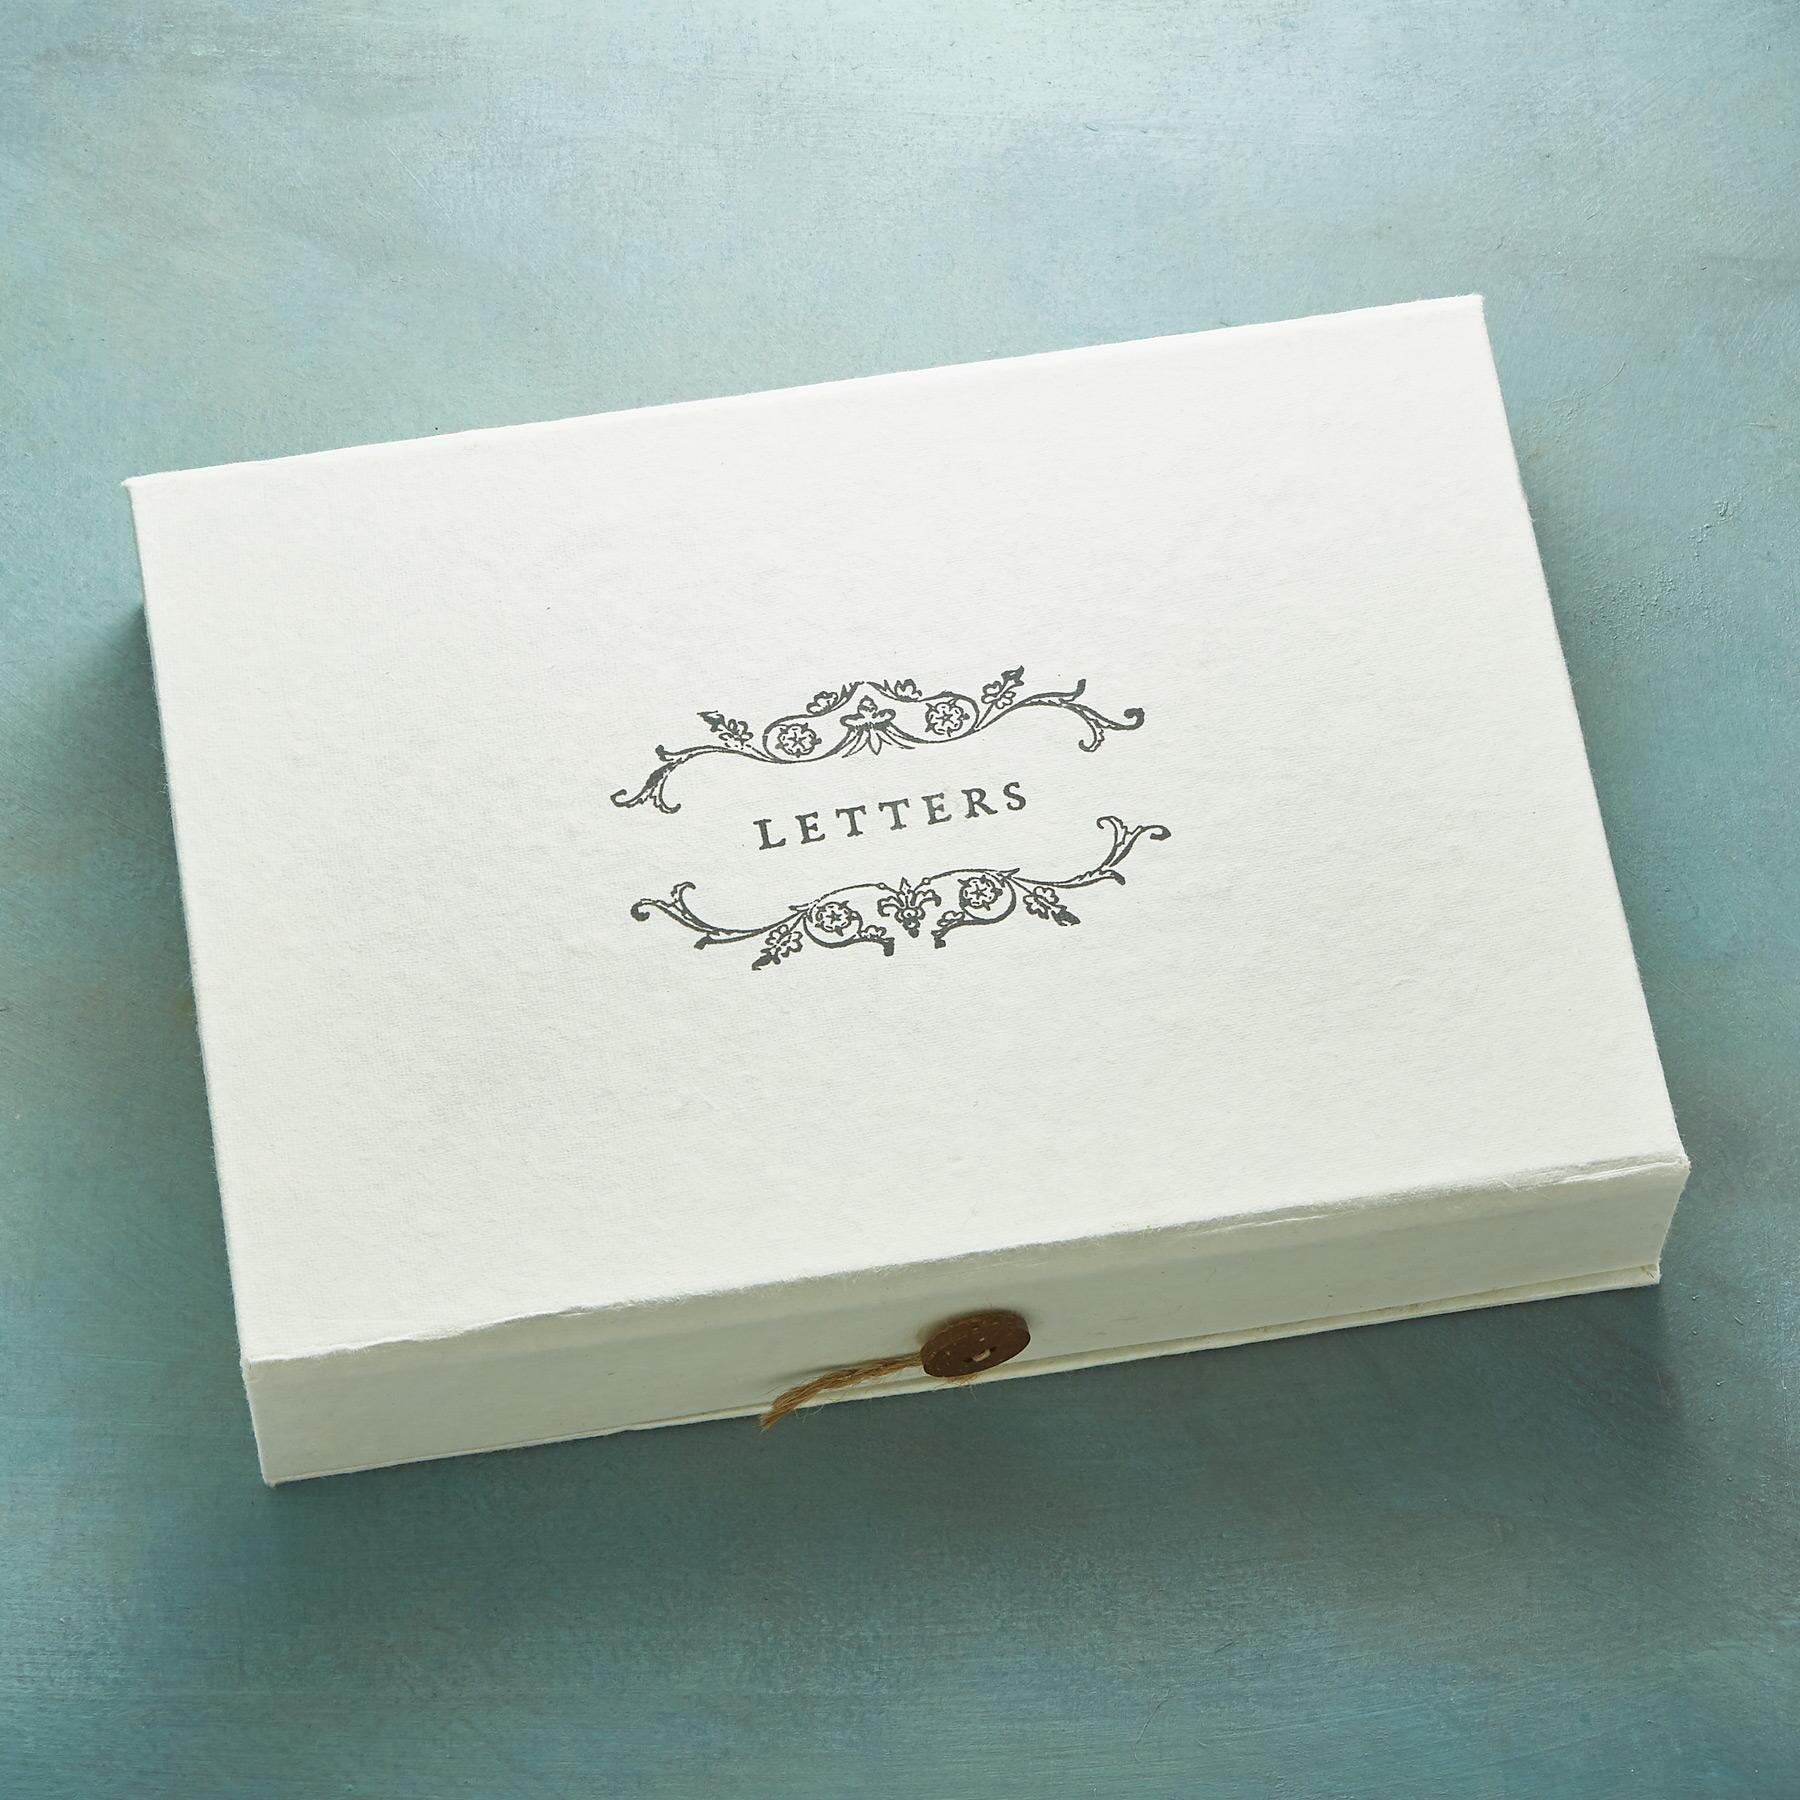 LETTERBOX STATIONERY: View 2